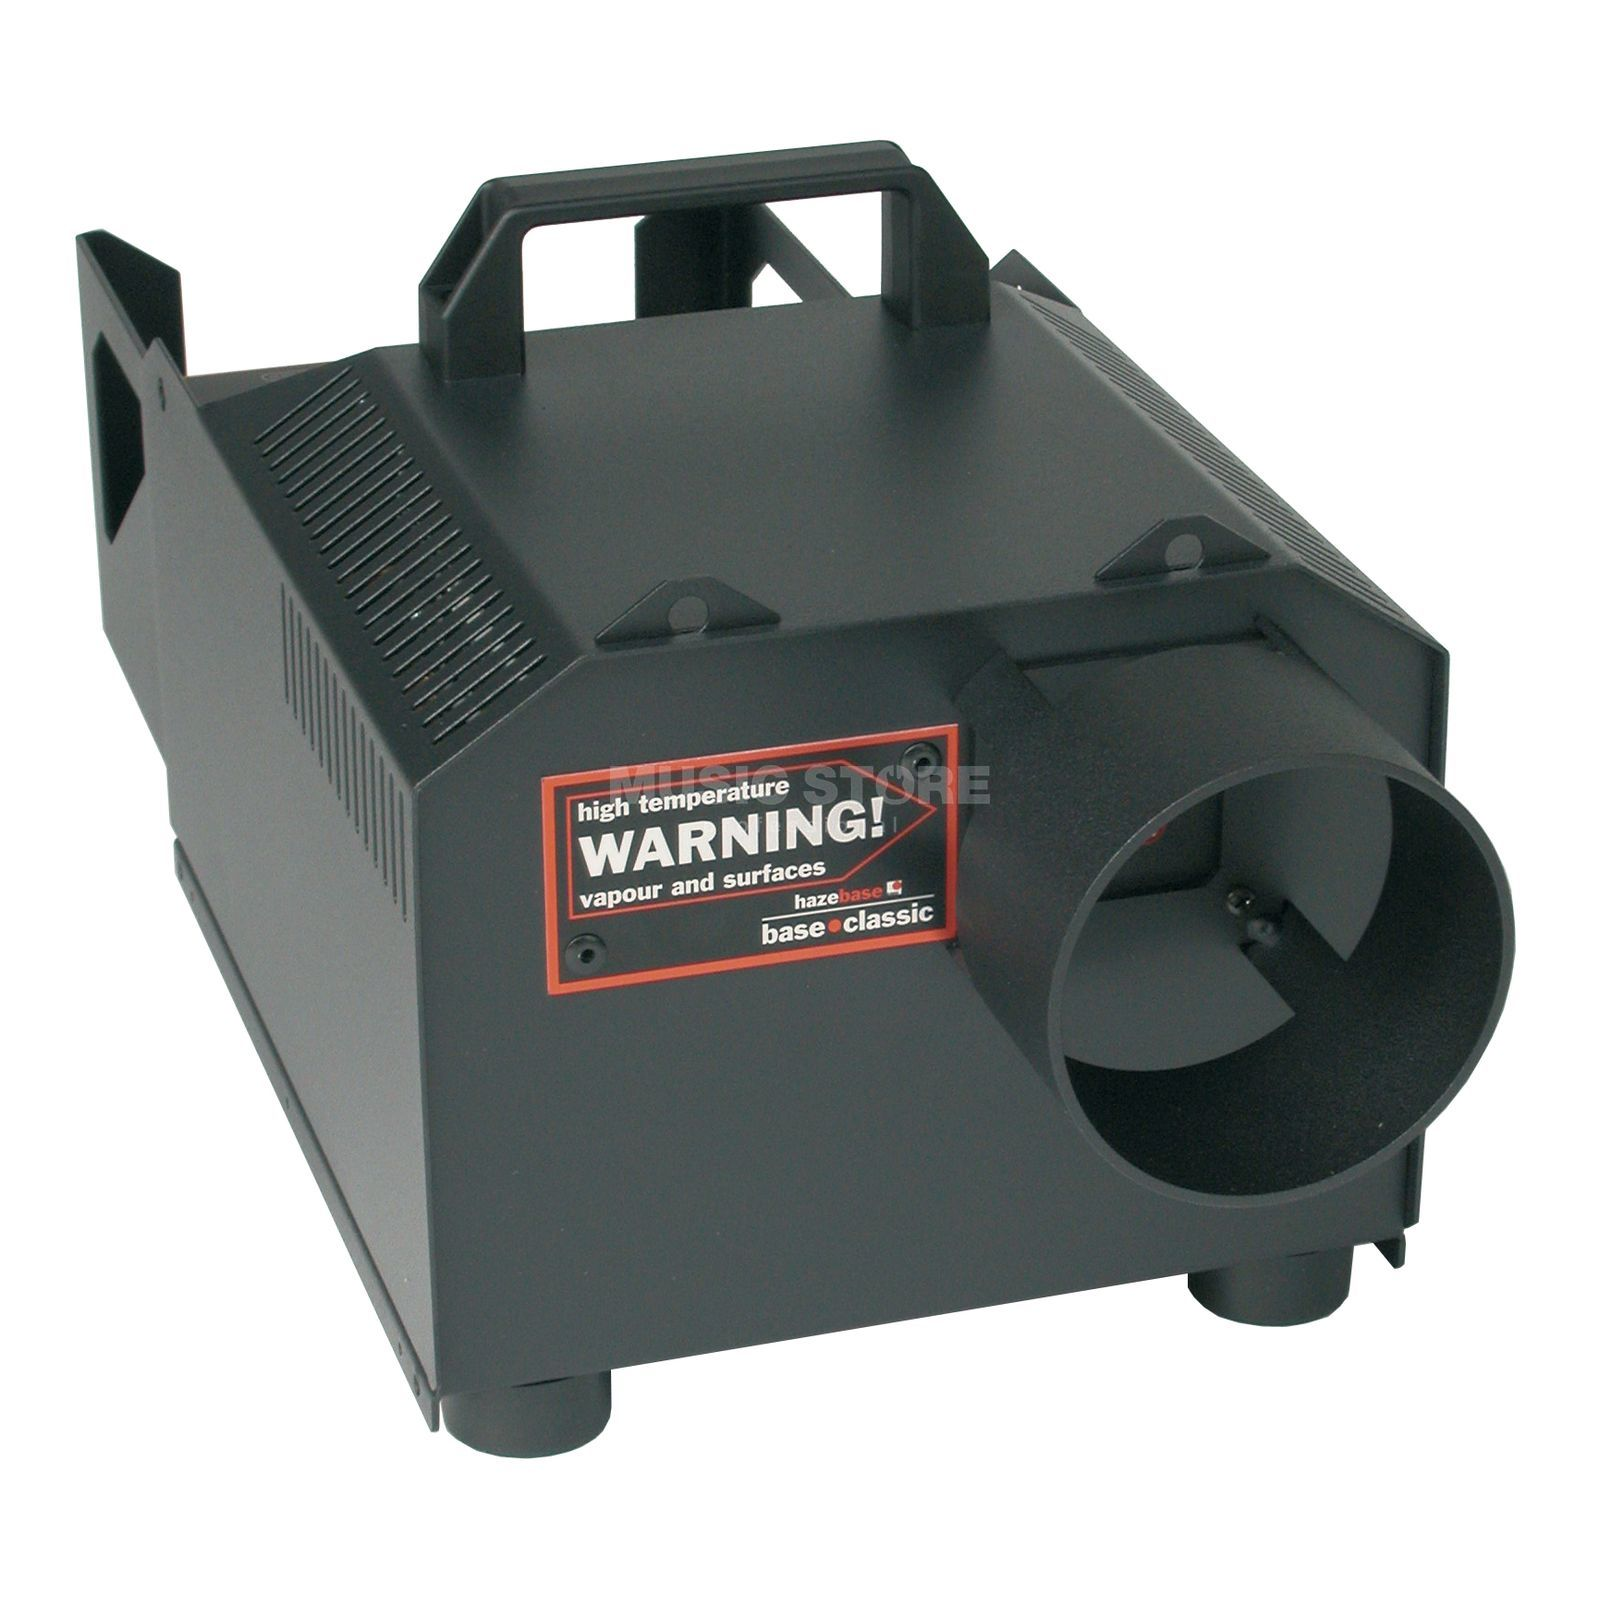 Hazebase Base Classic Fog Machine 1300W 230V/50Hz Product Image